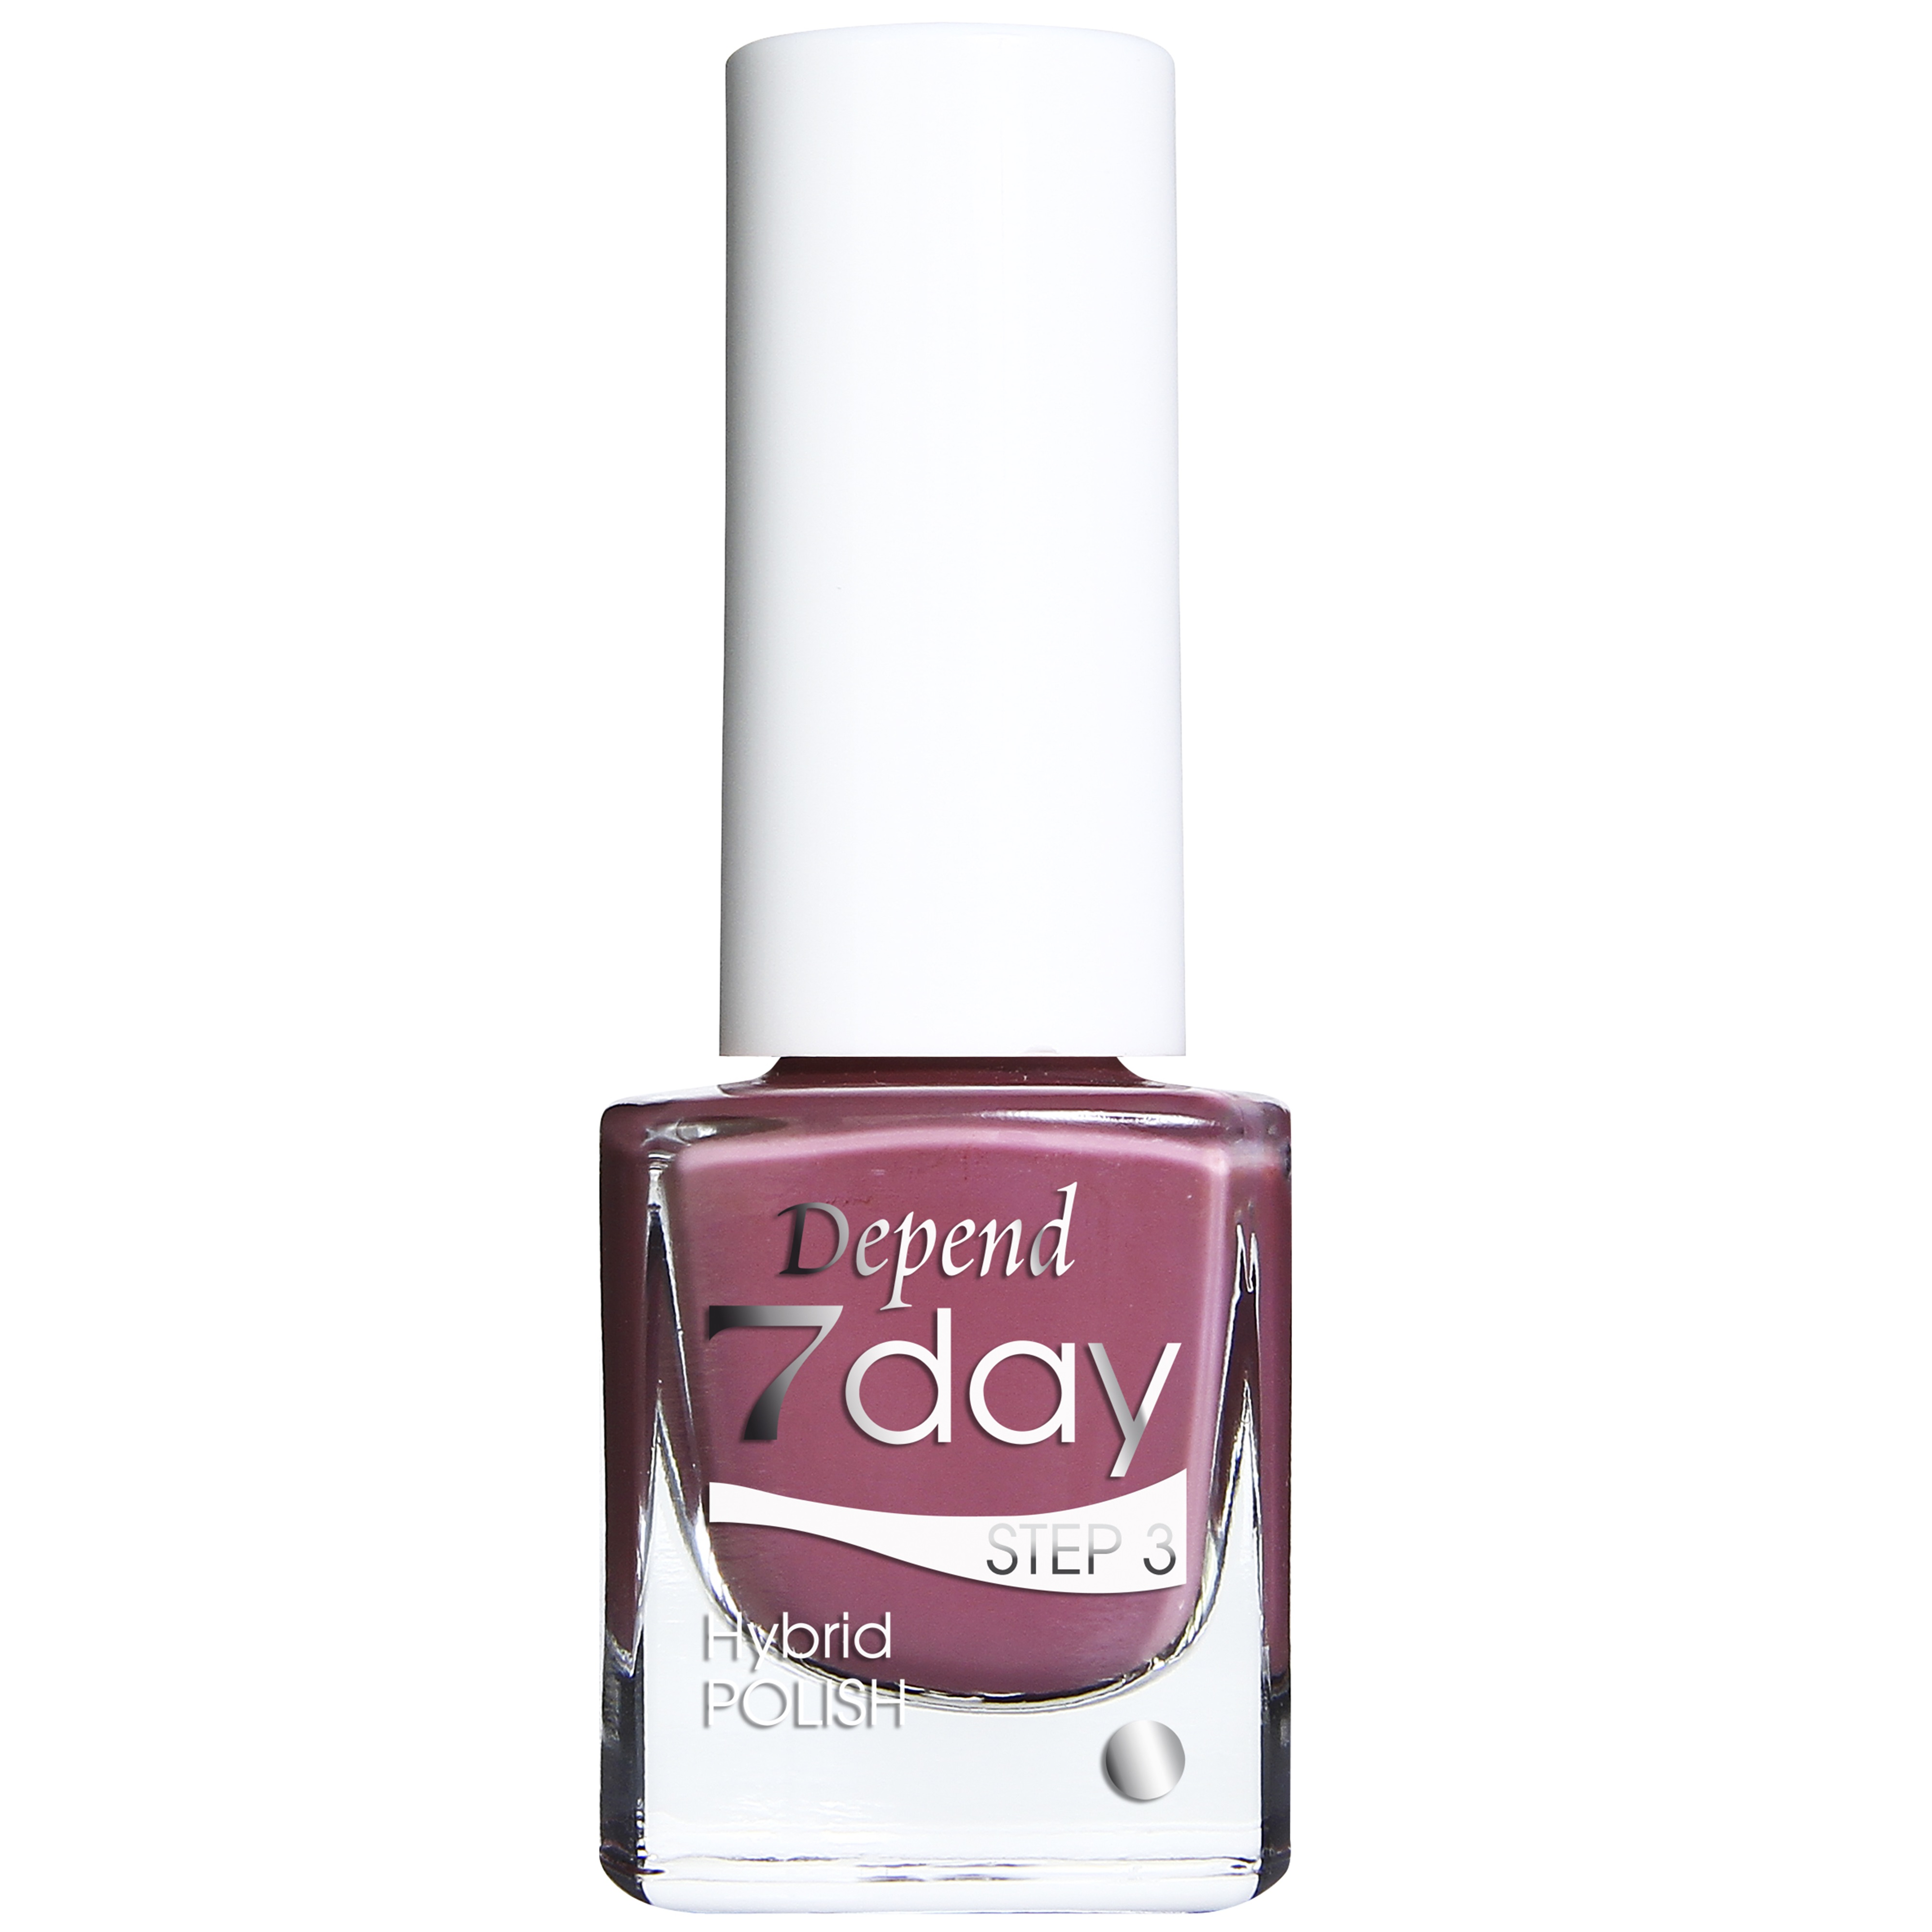 7 Day Nailpolish 7037 Poetry in motion